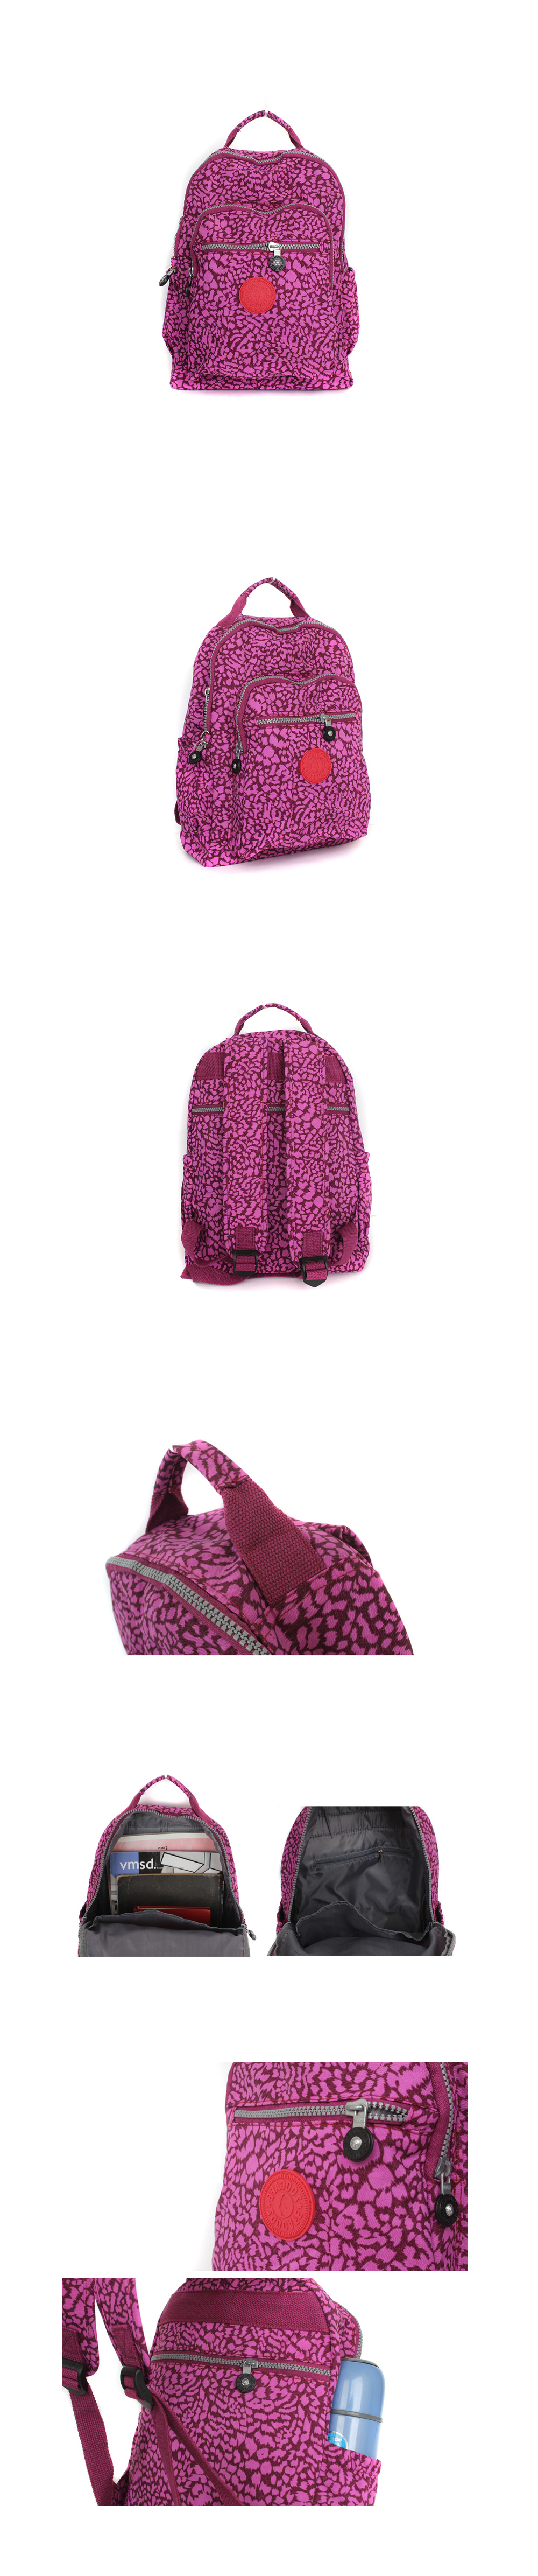 fabp-07lounge-backpack886-1_p